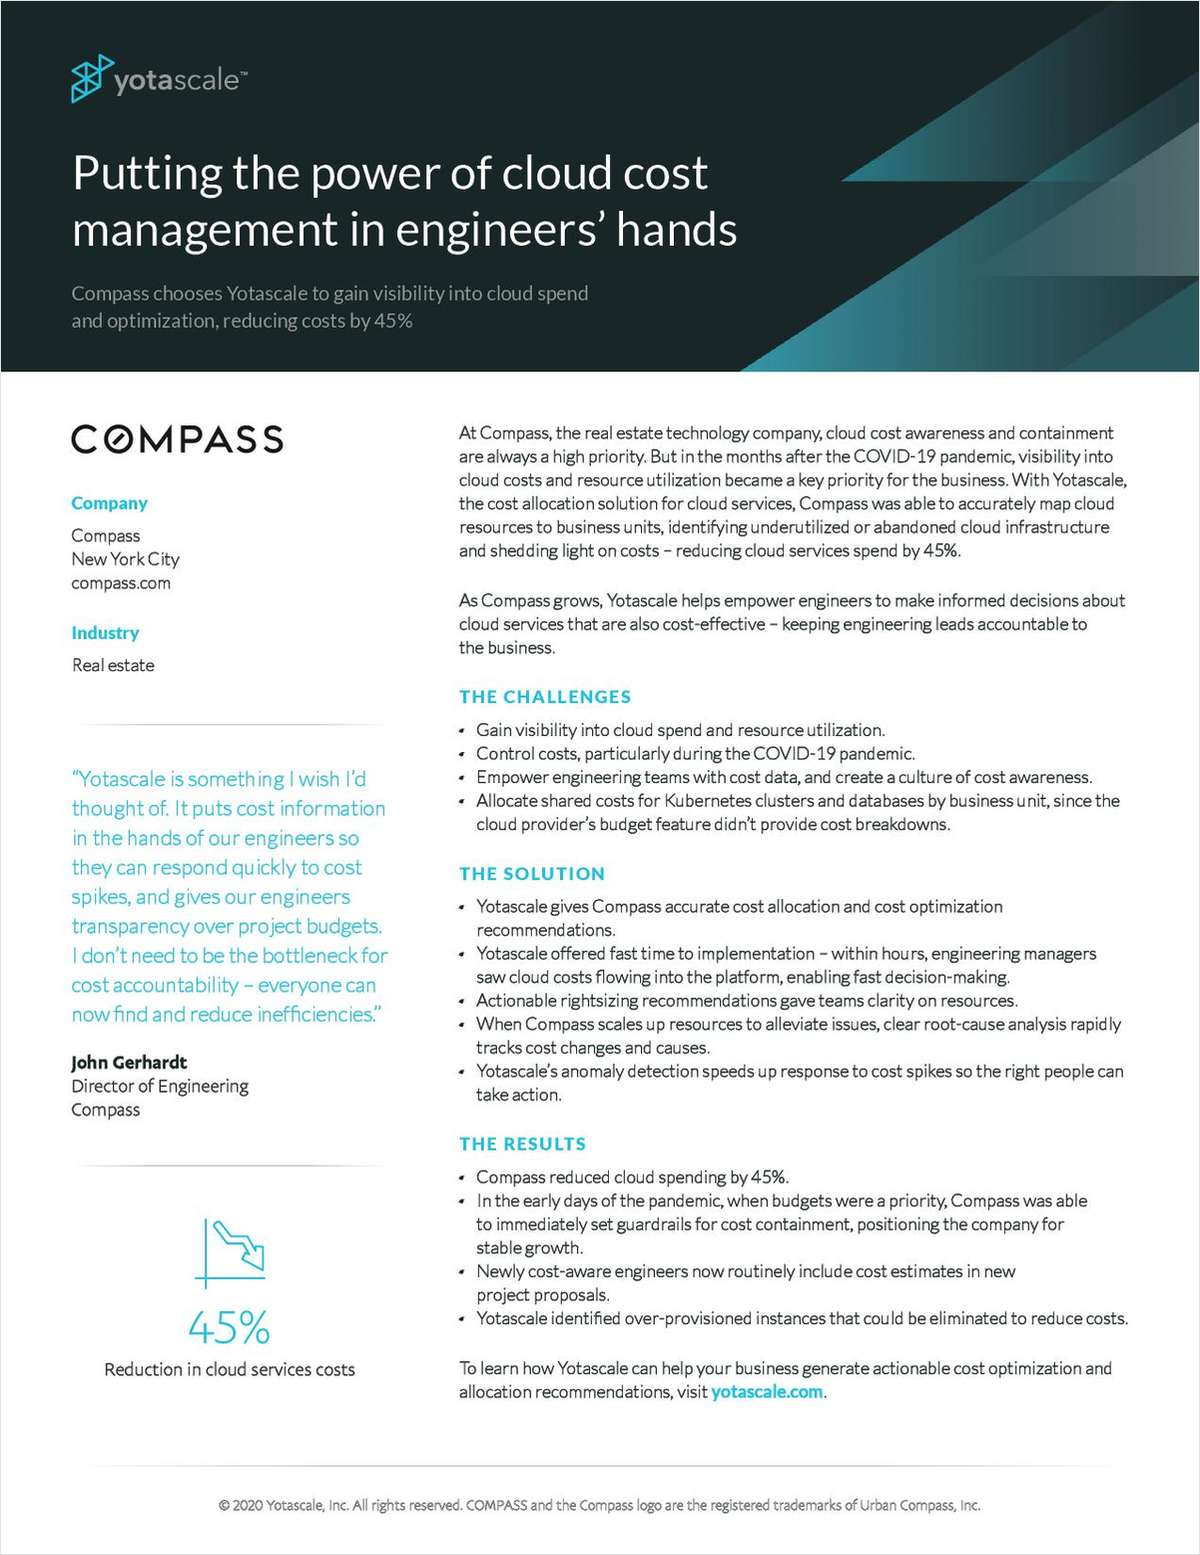 Putting the power of cloud cost management in engineers' hands